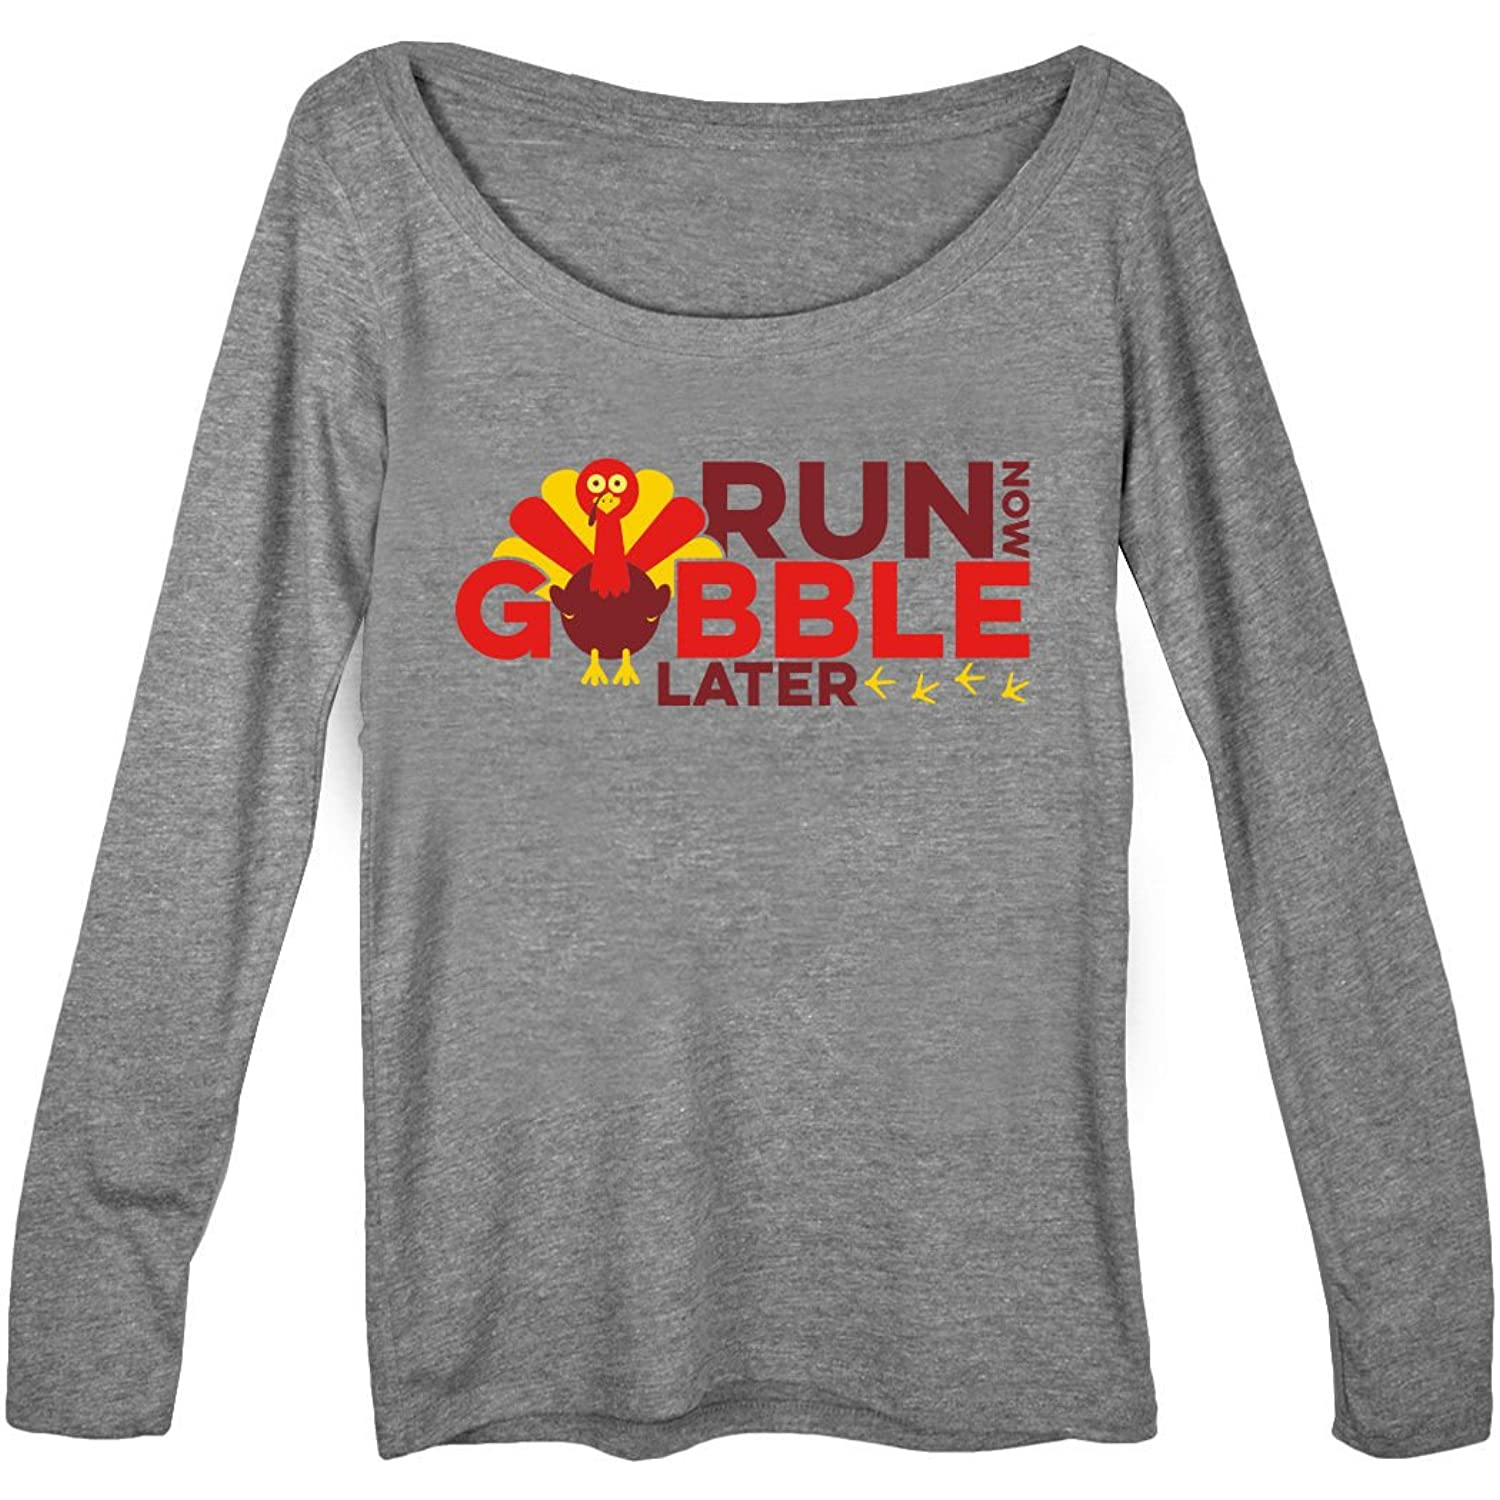 Gone For a Run Women's Runner Scoop Neck Long Sleeve Tee Run Now Gobble Later